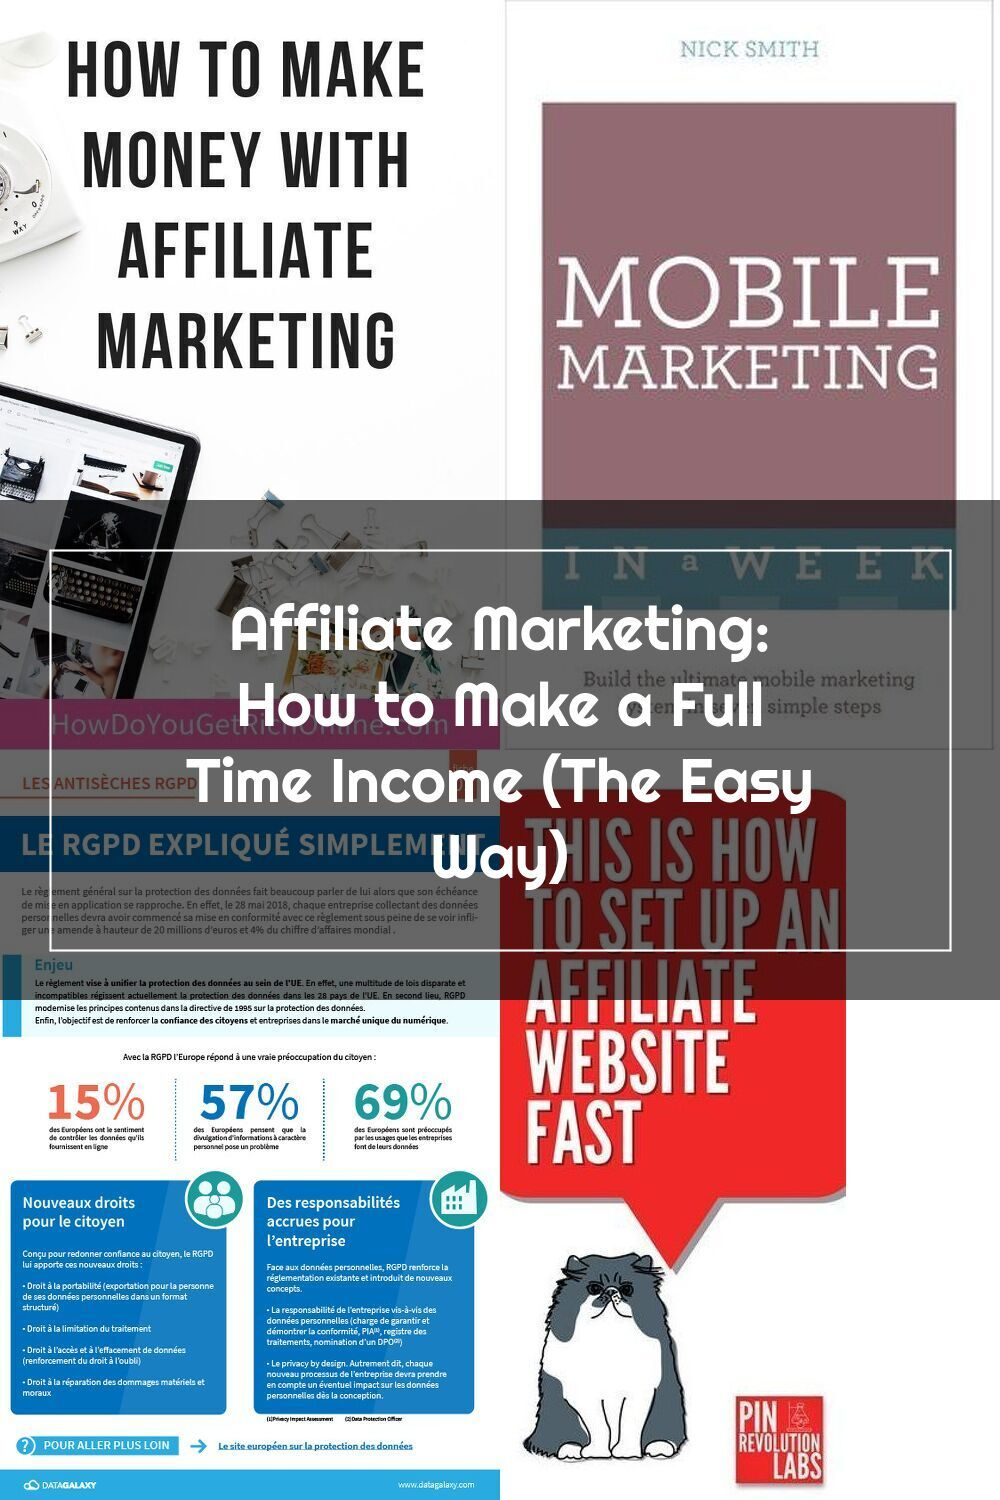 How To Make a Full Time With Affiliate Marketing